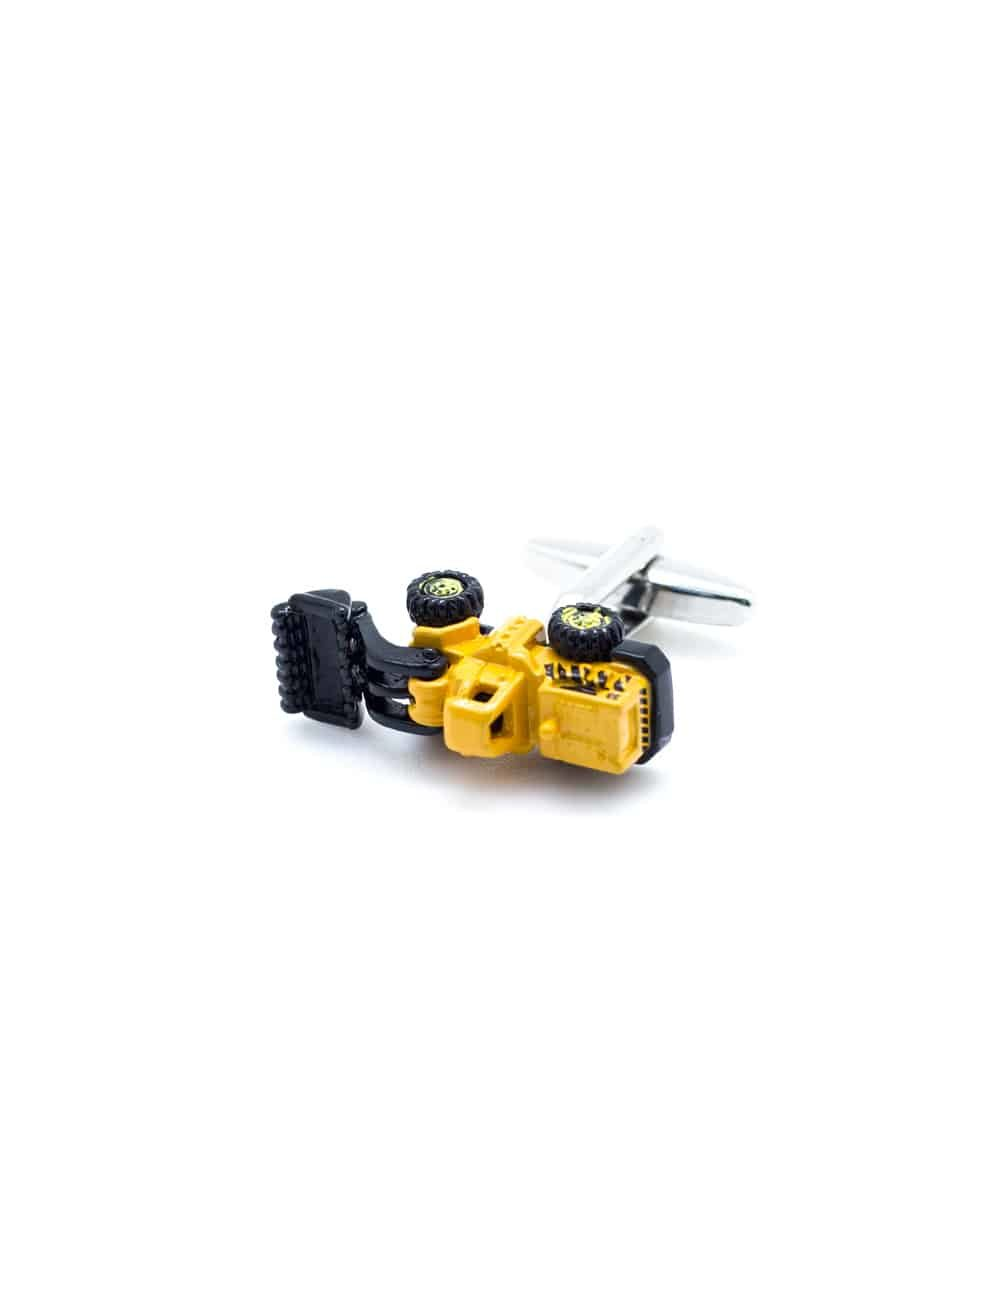 Yellow armored construction wheel loader cufflink 0114-008